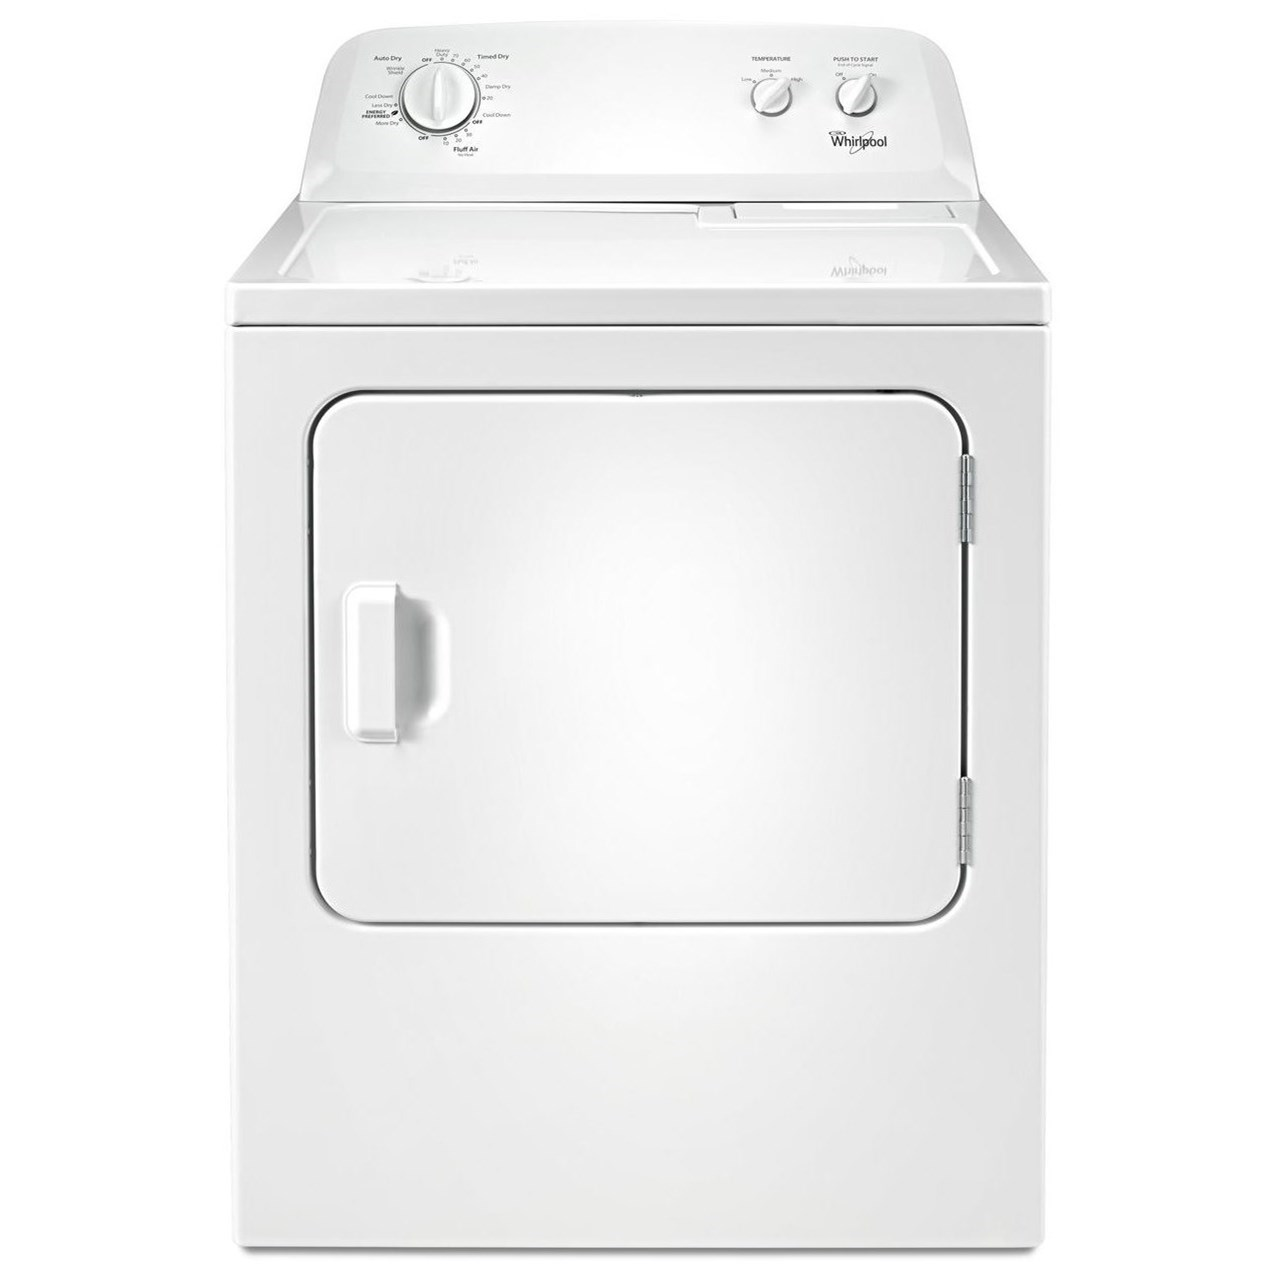 Whirlpool Gas Dryers 7.0 cu. ft. Top Load Paired Dryer with the W - Item Number: WGD4616FW